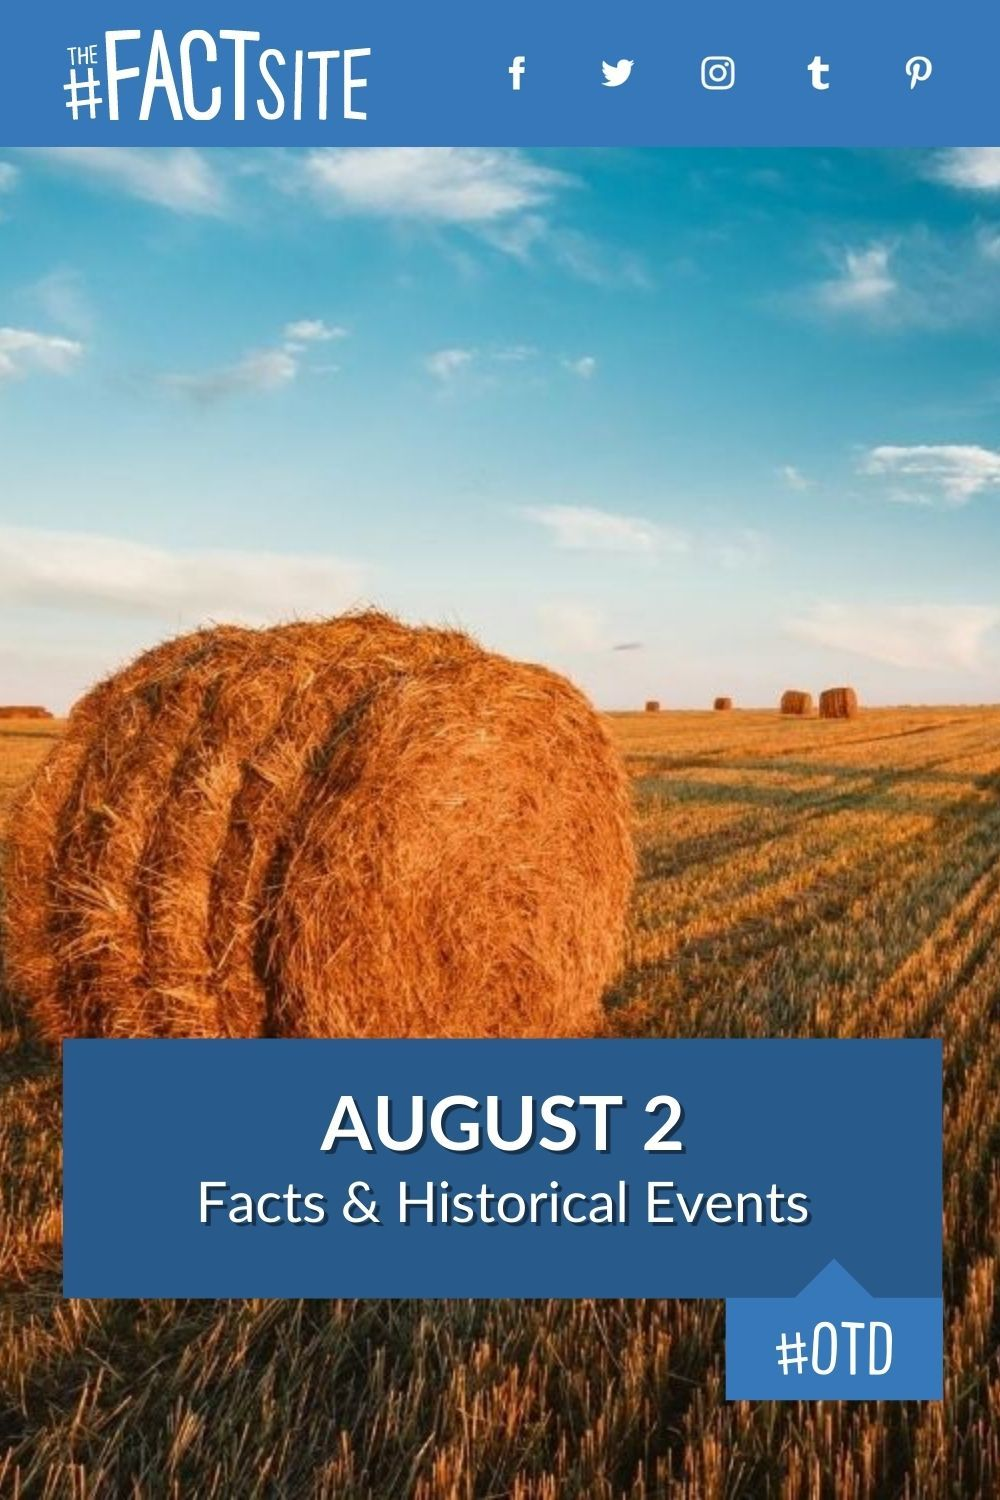 Facts & Historic Events That Happened on August 2